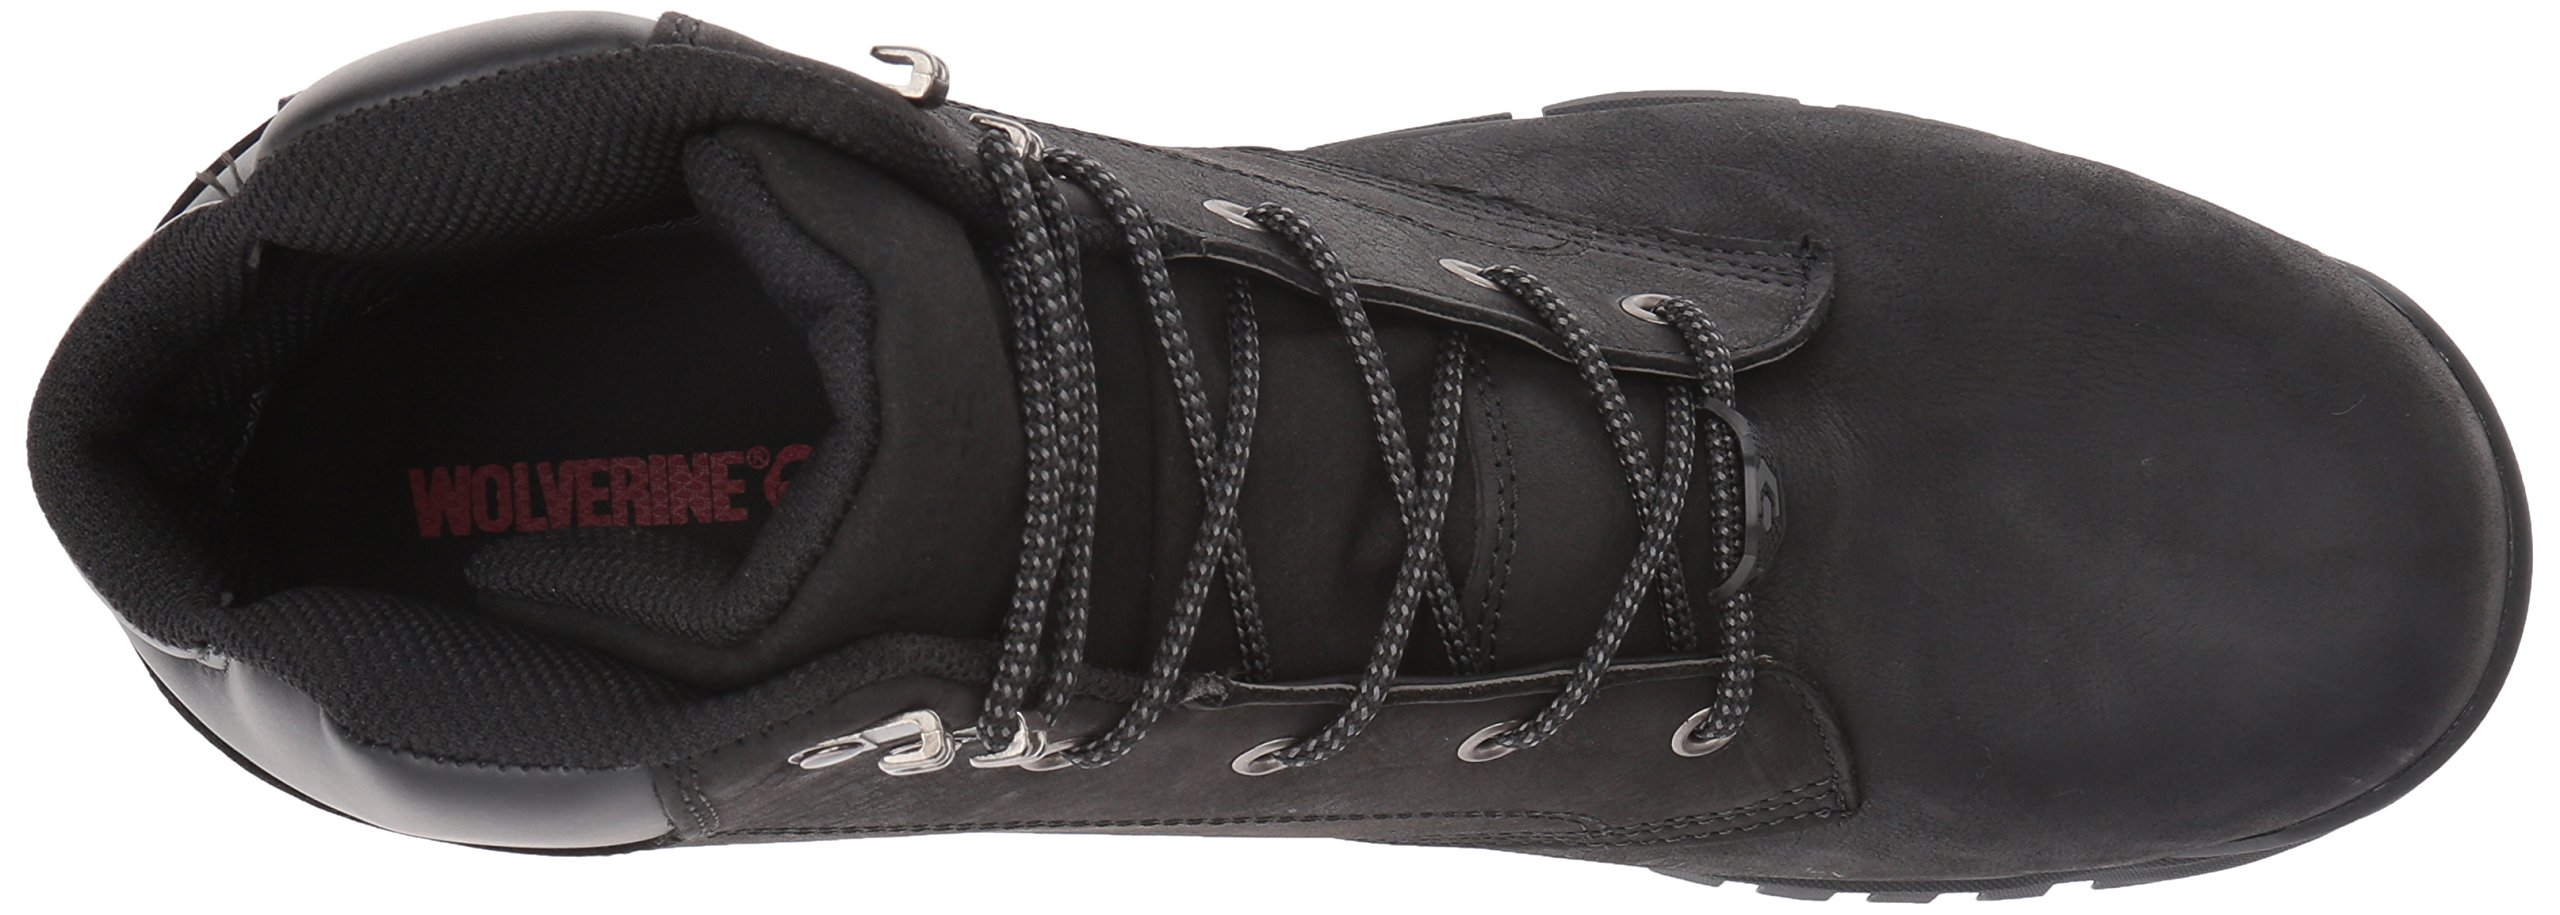 Wolverine Men's Mauler LX Composite Toe Waterproof Work Boot Black 7 W US by Wolverine (Image #8)